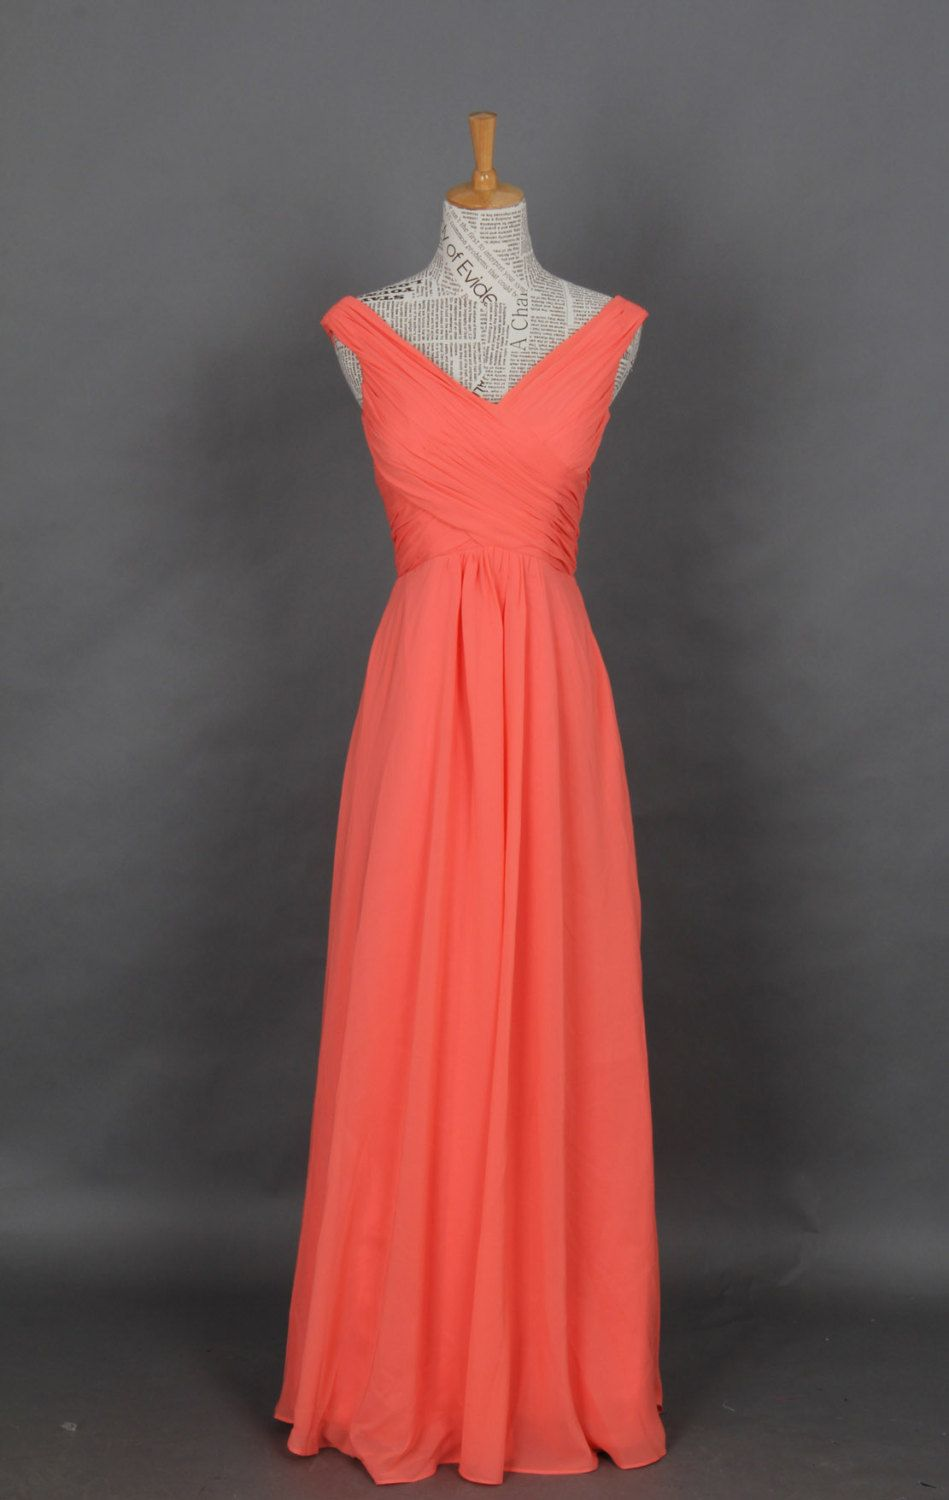 Chiffon Prom Dress Coral Straps Vneck Long Prom Dress by DressbLee